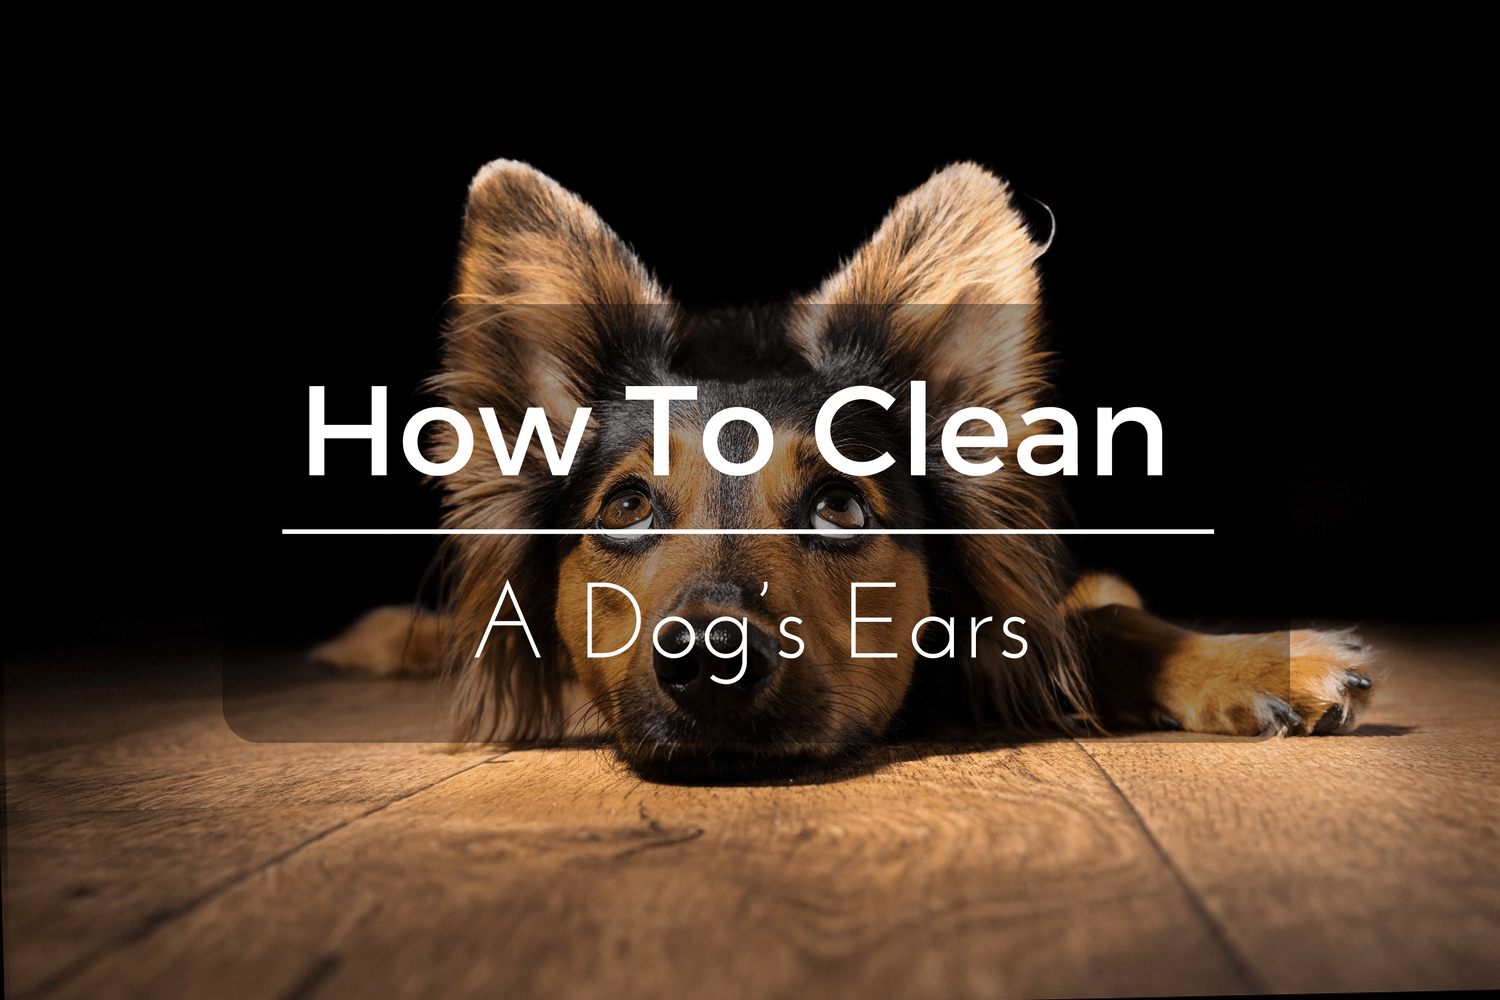 How To Clean A Dog's Ears In 5 Simple Steps